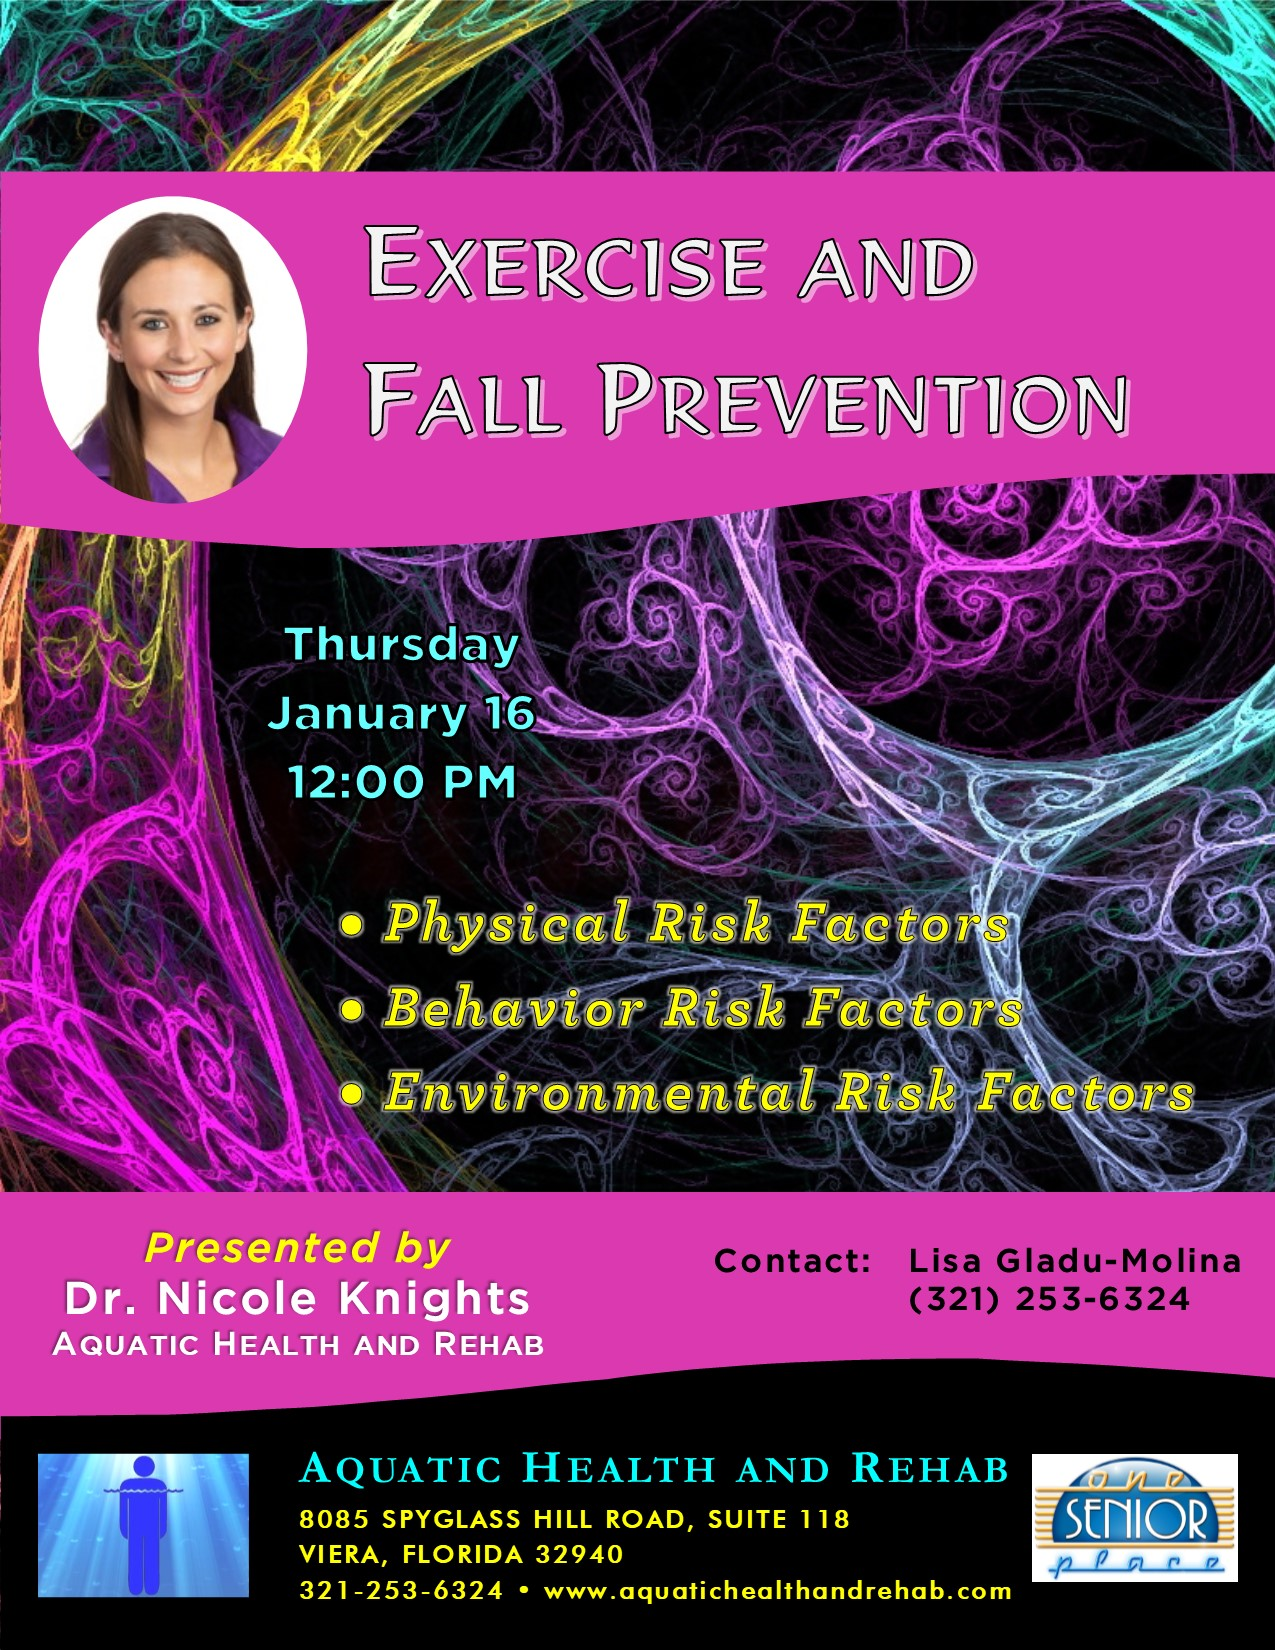 Exercise and Fall Prevention presented by Aquatic Health and Rehab